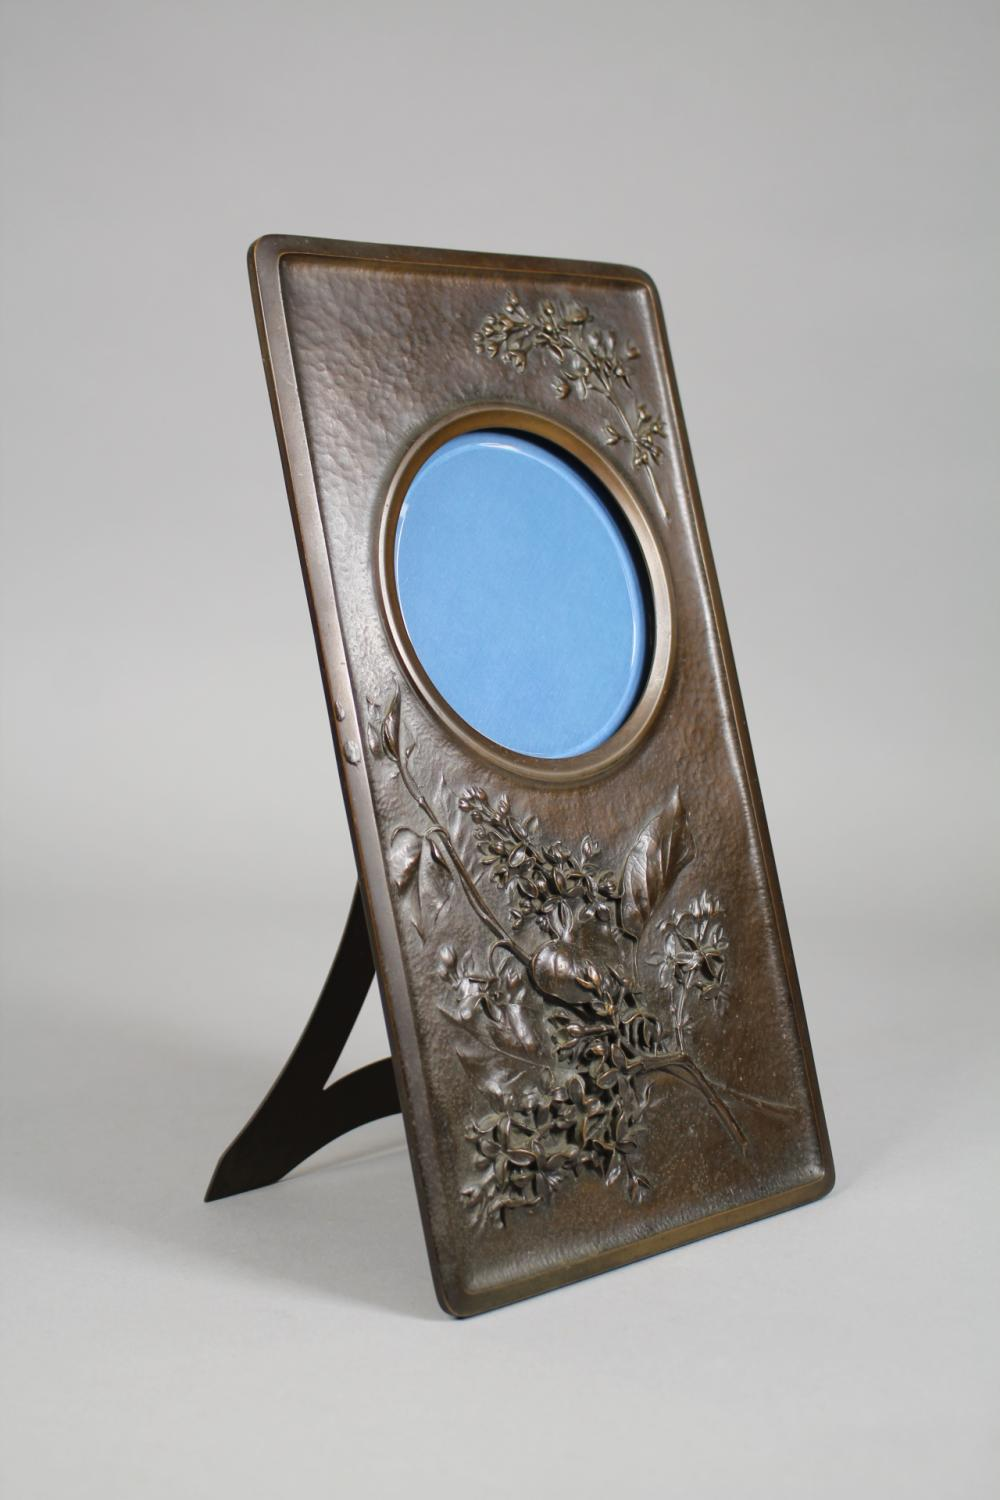 Antique French bronze easel back dressing table mirror, floral spray in relief, very finely cast, approx 28cm H x 15cm W